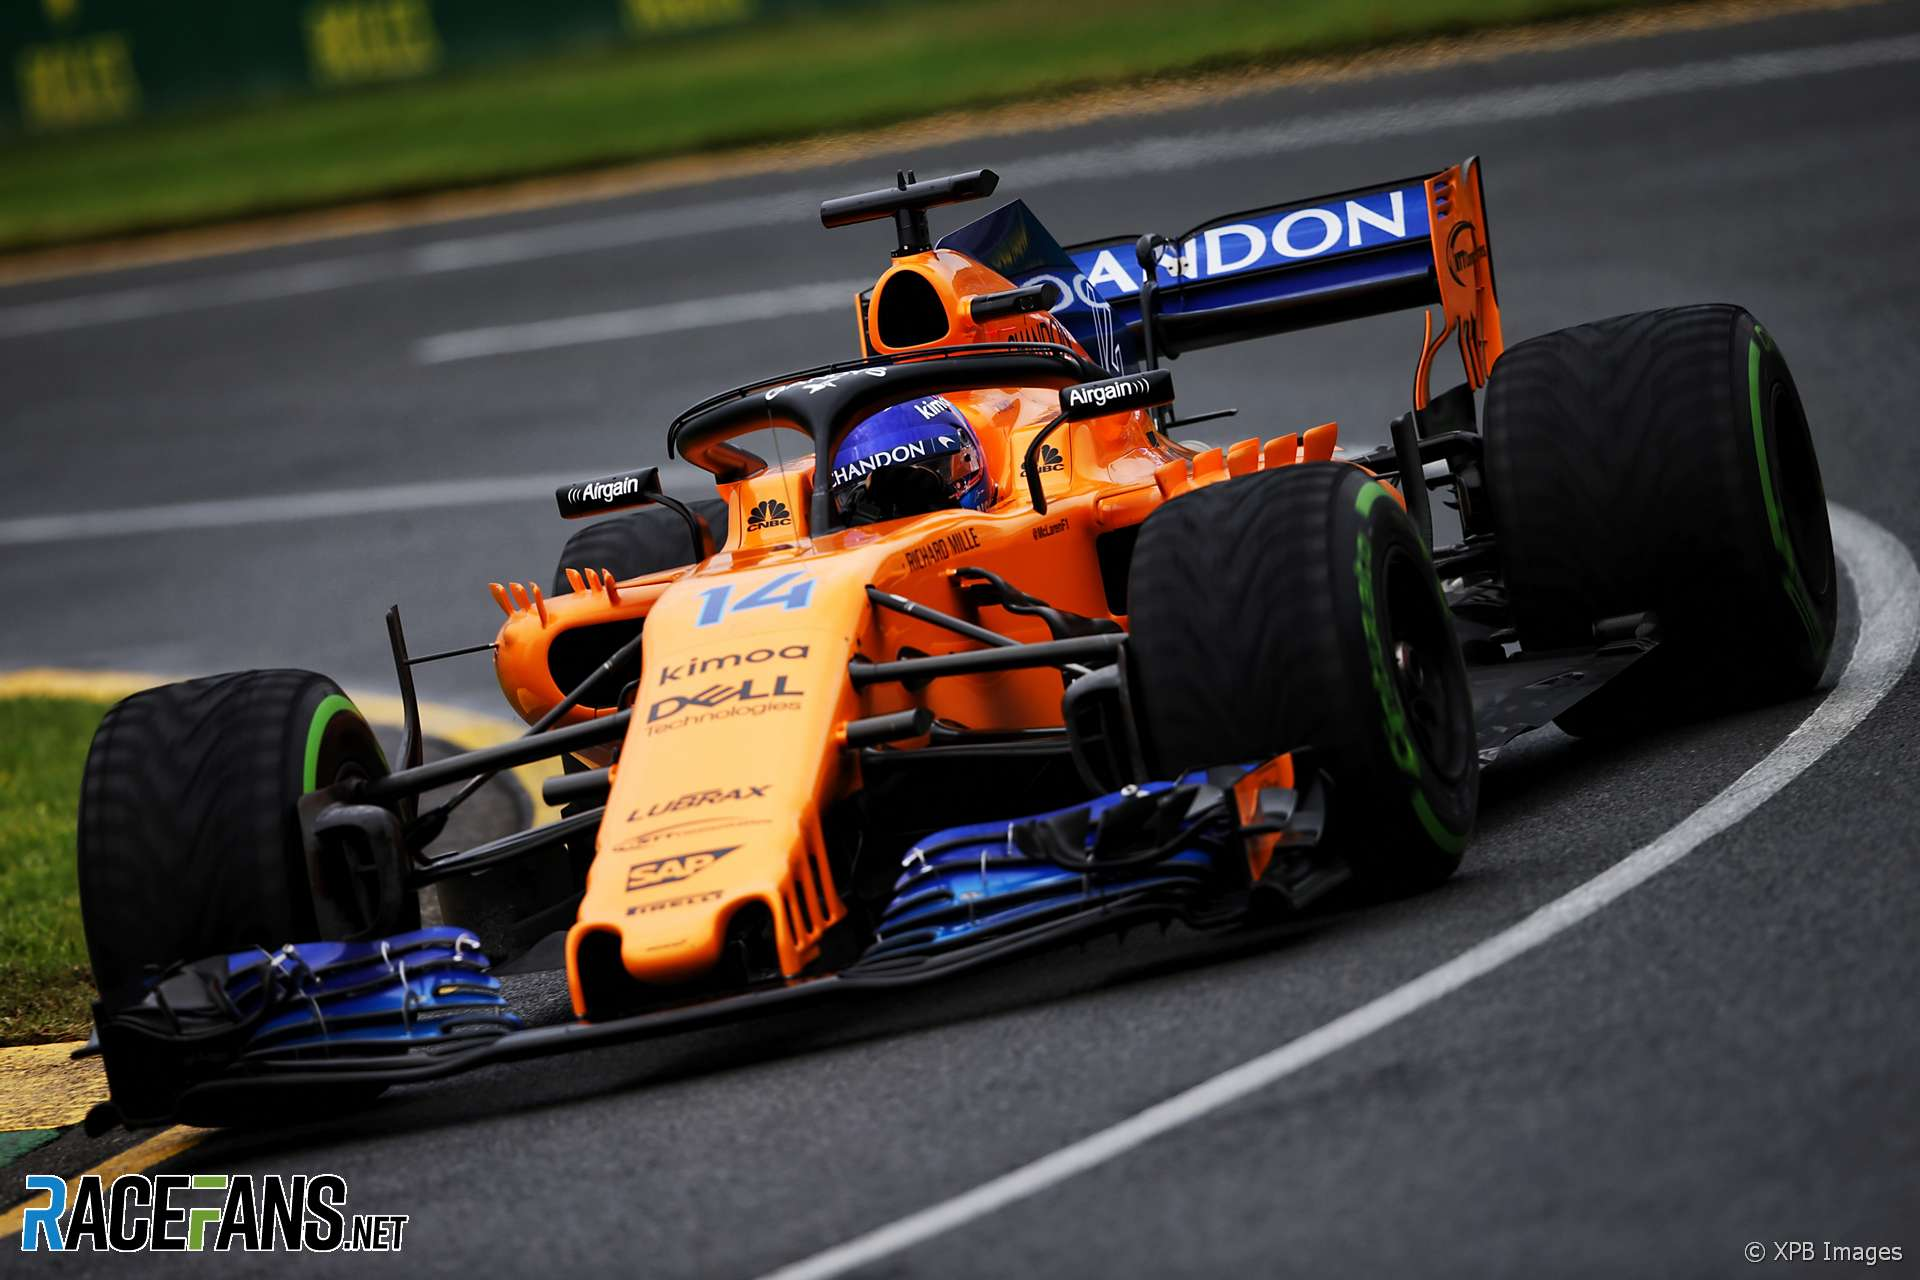 fernando alonso mclaren albert park 2018 racefans. Black Bedroom Furniture Sets. Home Design Ideas